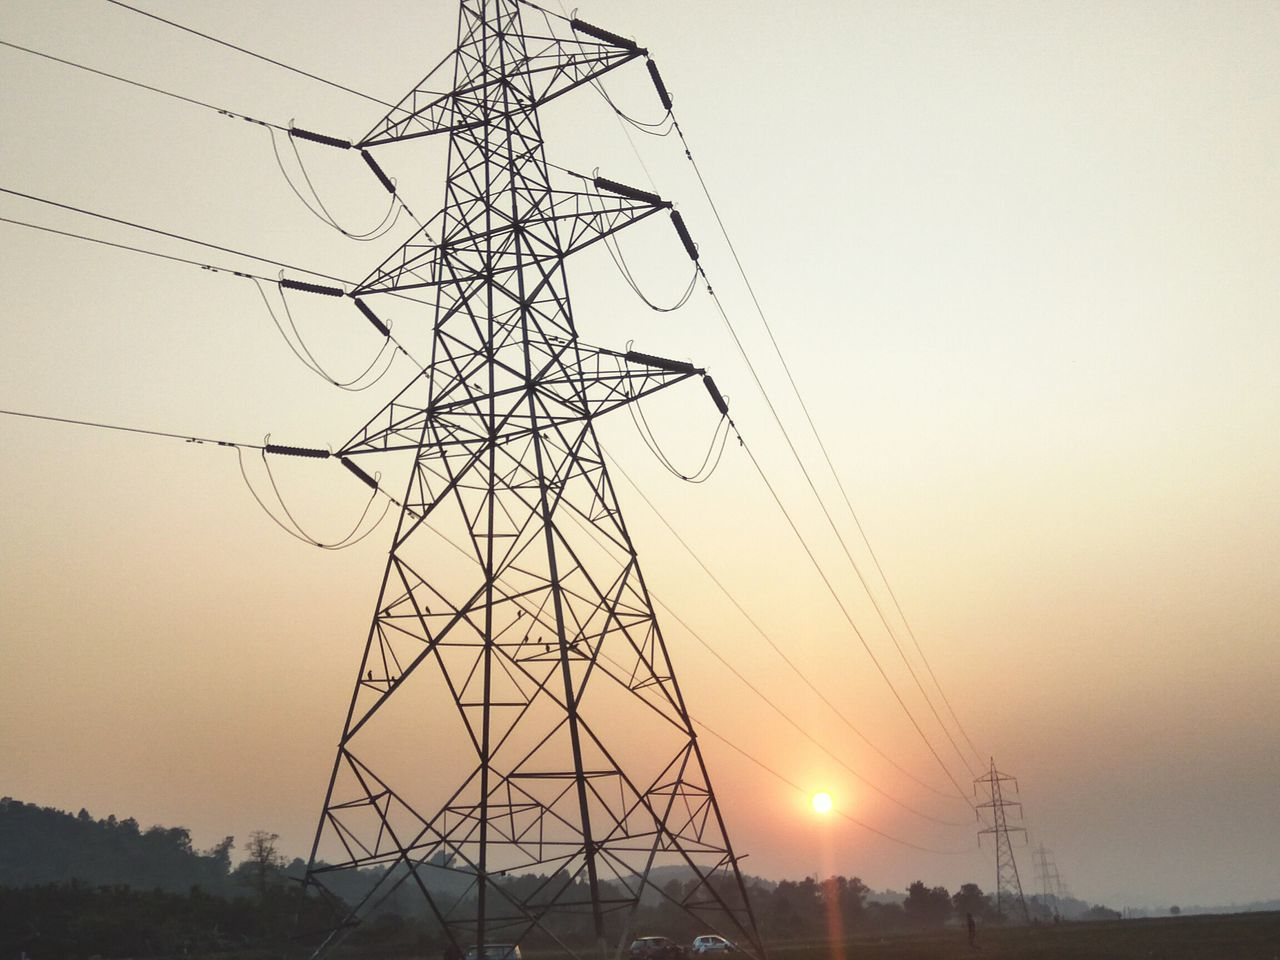 cable, electricity pylon, electricity, power supply, connection, fuel and power generation, power line, sunset, electricity tower, no people, clear sky, silhouette, technology, sky, low angle view, tall, outdoors, tree, day, nature